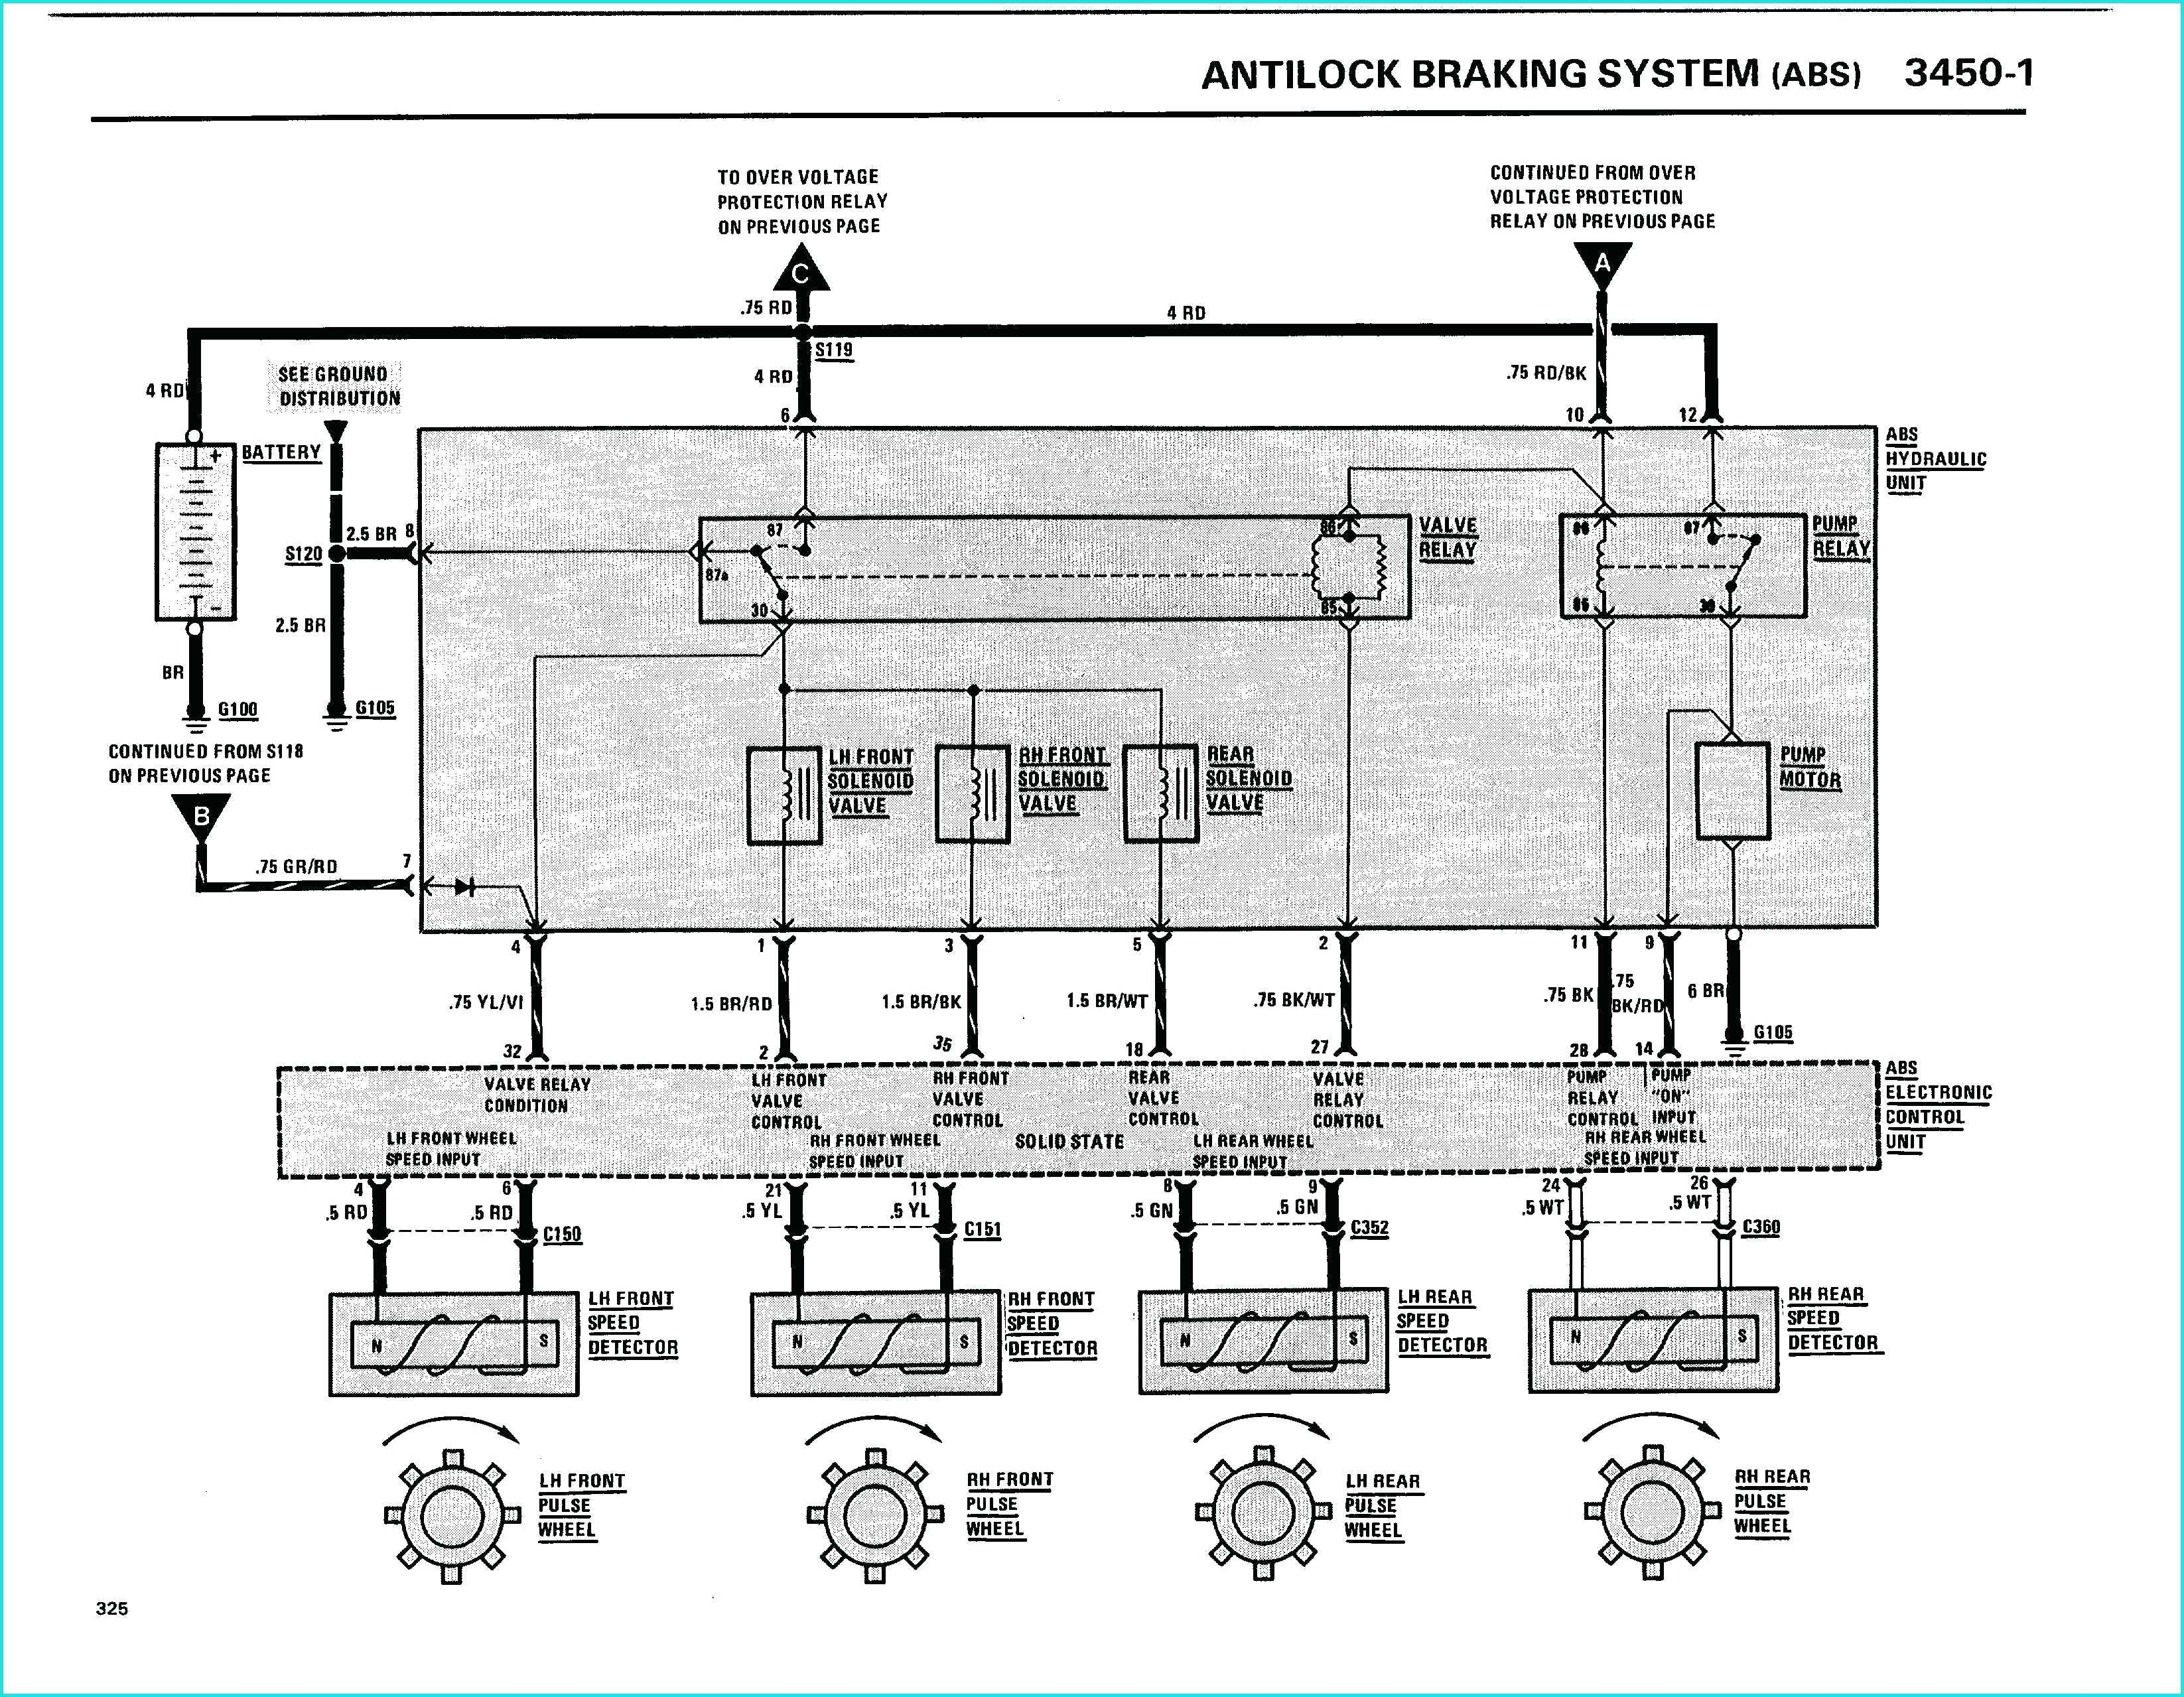 Utility Trailer Abs Wiring Diagram - Wiring Diagram Name on utility trailer chassis, utility trailer maintenance, 7 pronge trailer connector diagram, utility trailer parts catalog, utility trailer accessories, utility trailer seats, utility trailer frame, utility trailer steering diagram, trailer parts diagram, electric trailer jack switch diagram, 4 pin trailer diagram, utility trailer schematics, utility trailer suspension, utility trailer repair, utility trailer assembly, utility trailer motor, utility trailer lights, utility trailer specifications, truck trailer diagram, utility trailer plug,